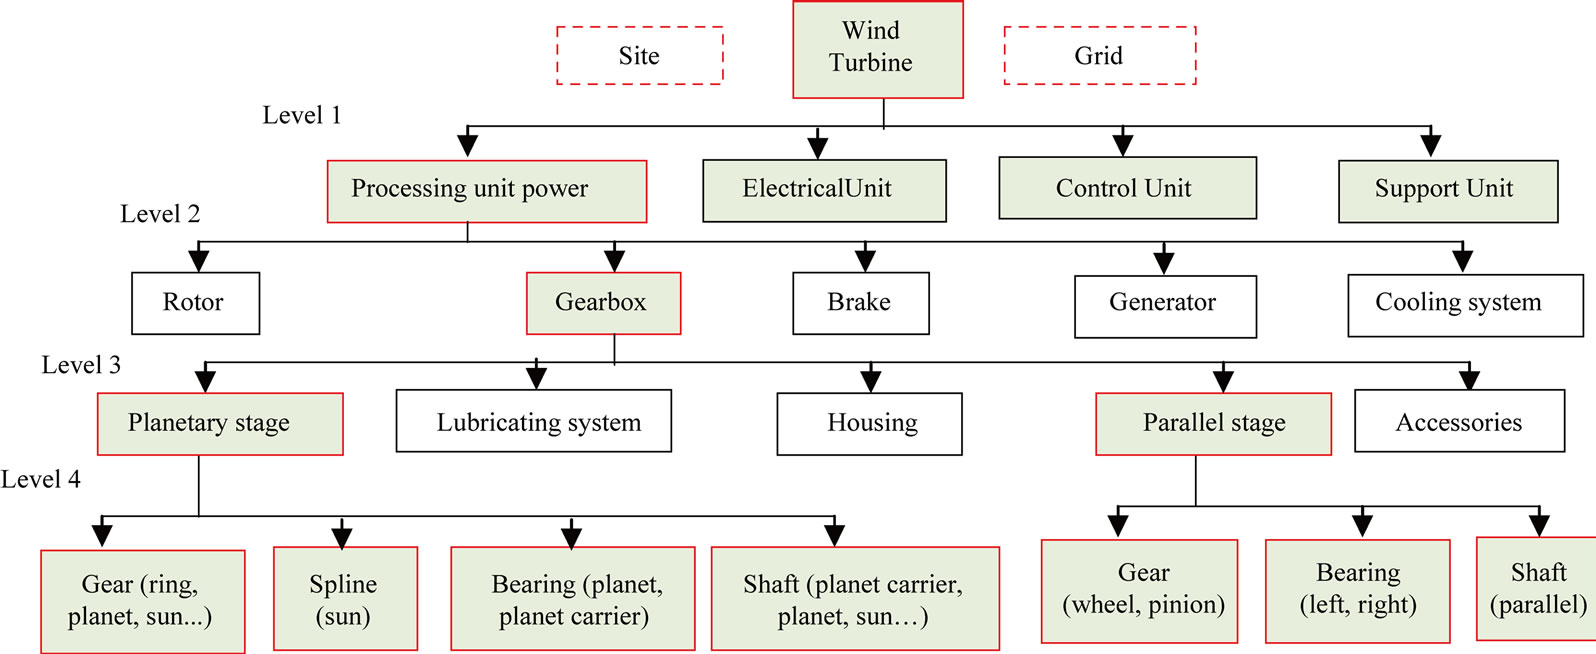 Preliminary Design Support By Integrating A Reliability Analysis For Wind Turbine Schematic